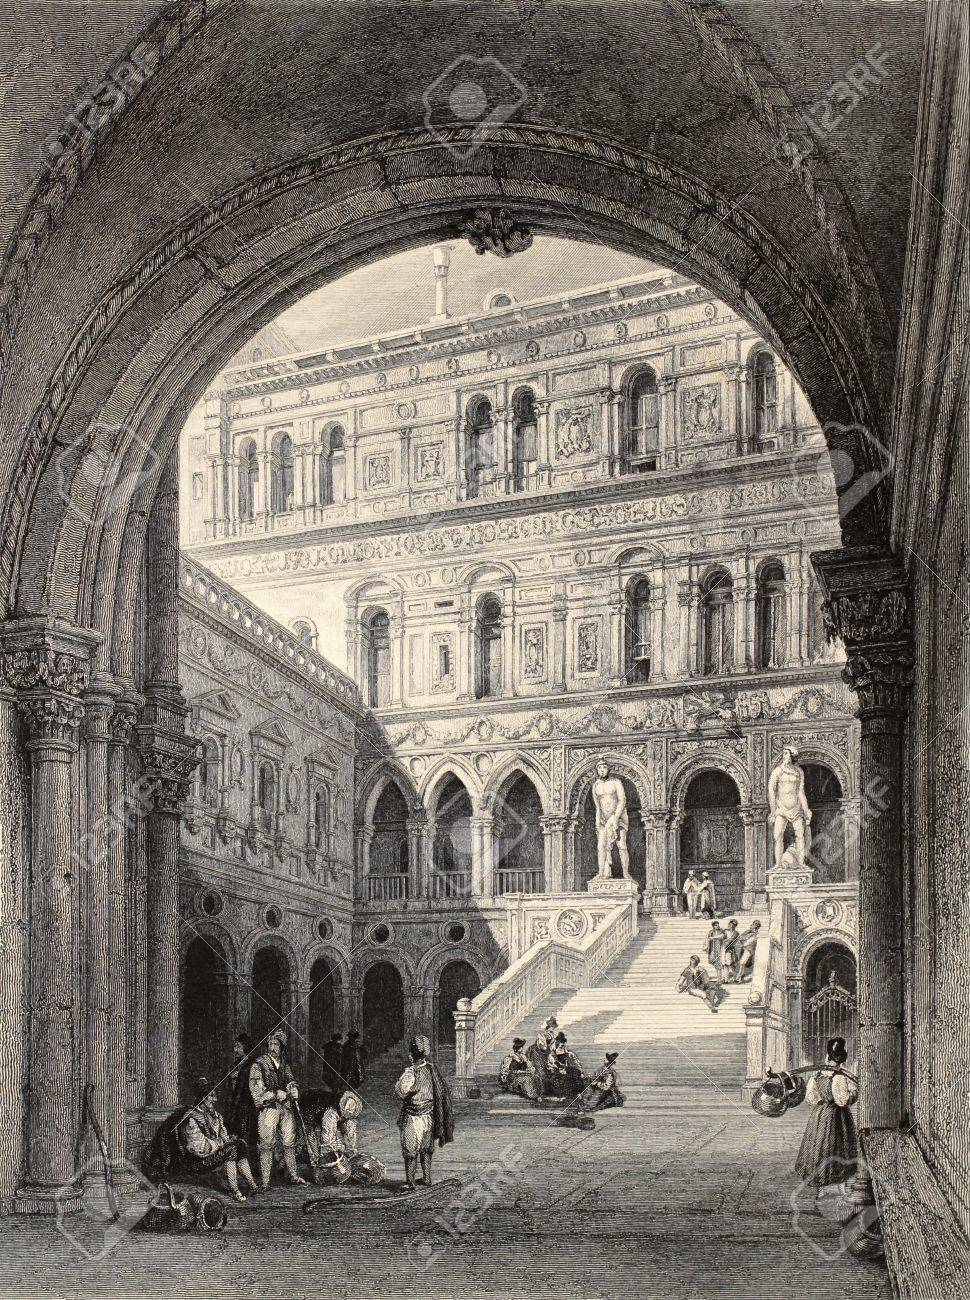 Antique illustration of Scala dei Giganti (Giants' Staircase) in Doge's Palace, Venice. Original, created by W. L. Leitch and T. Turnbull, was published in Florence, Italy, 1842, Luigi Bardi ed.  Stock Photo - 14939229